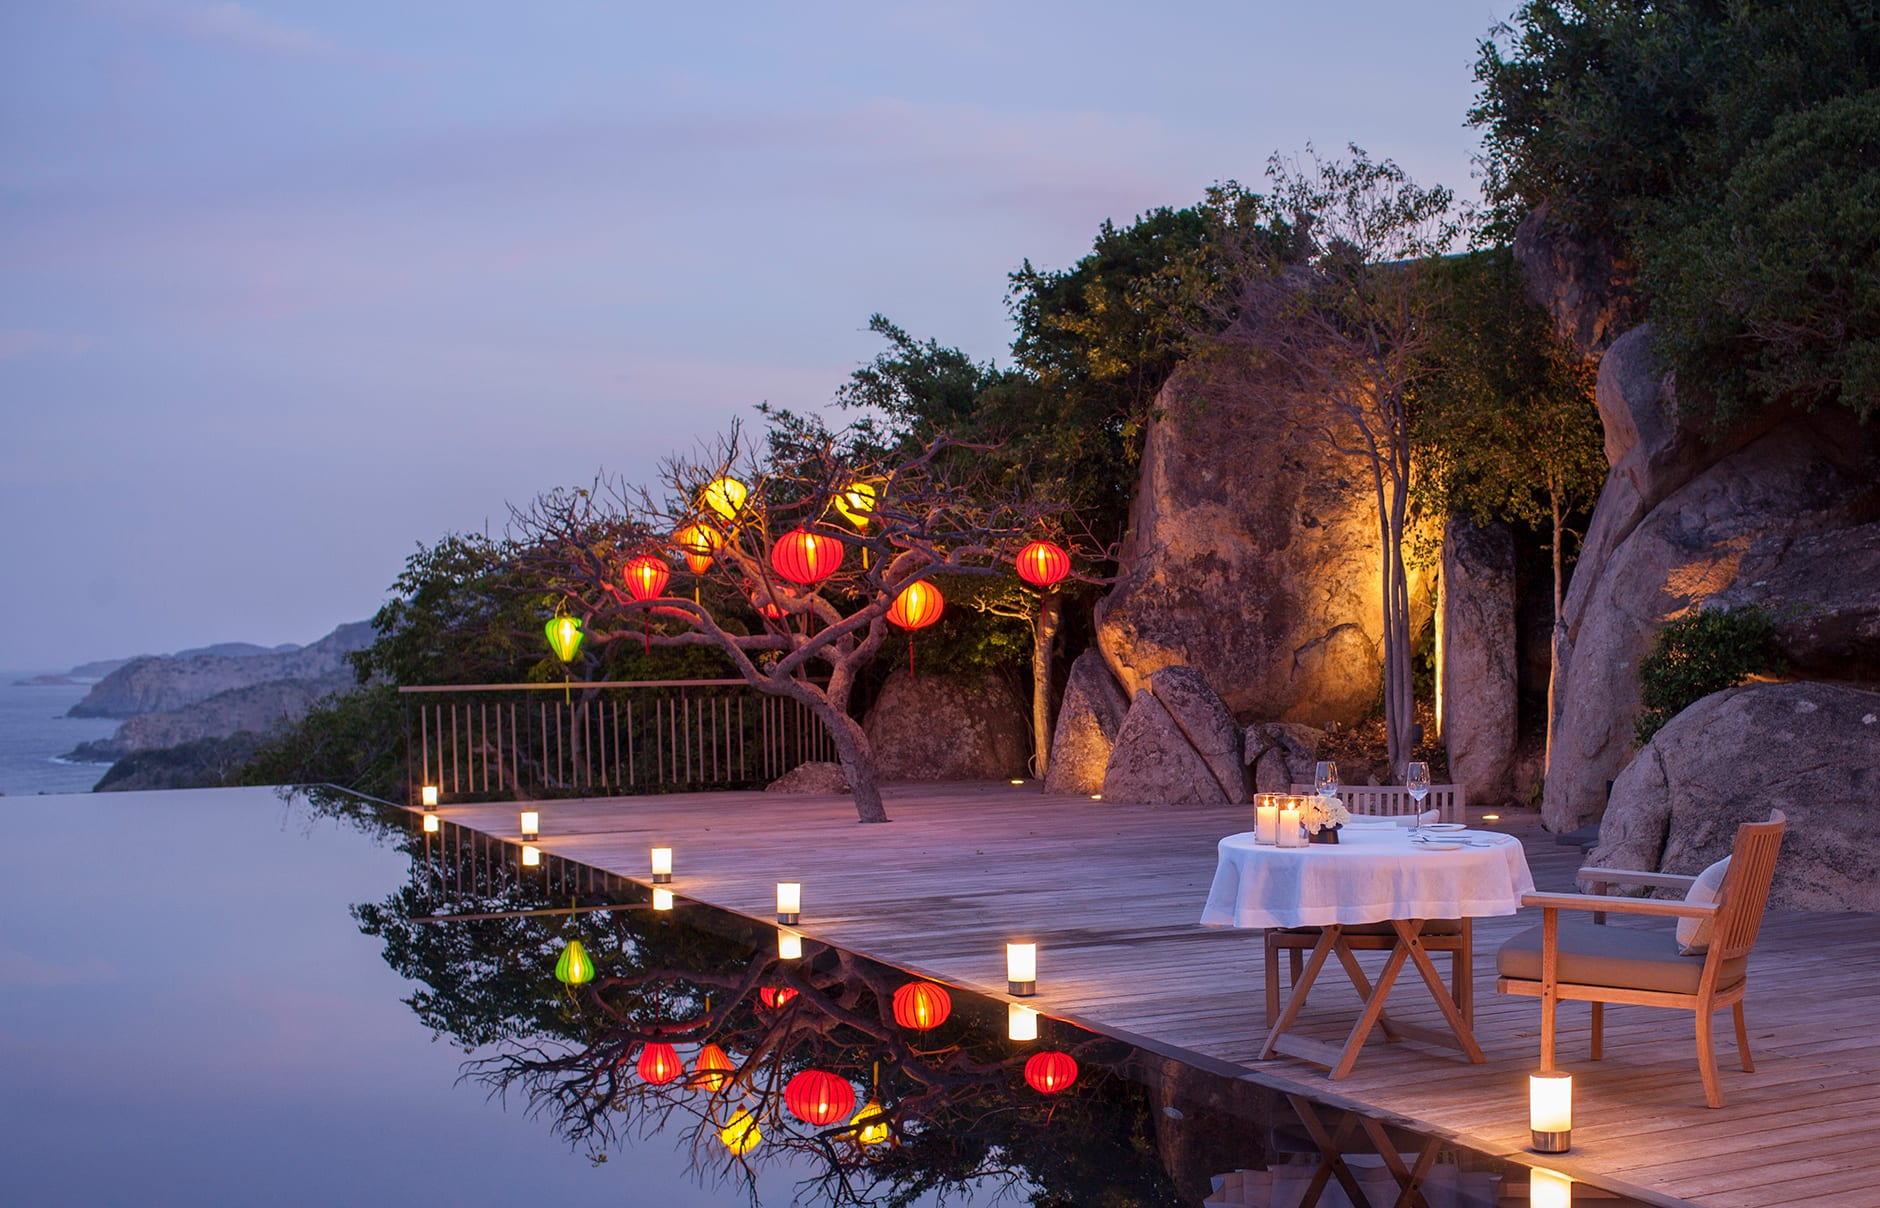 Amanoi Resort, Nha Trang, Vietnam. Luxury Hotel Review by TravelPlusStyle. Photo © Aman Resorts